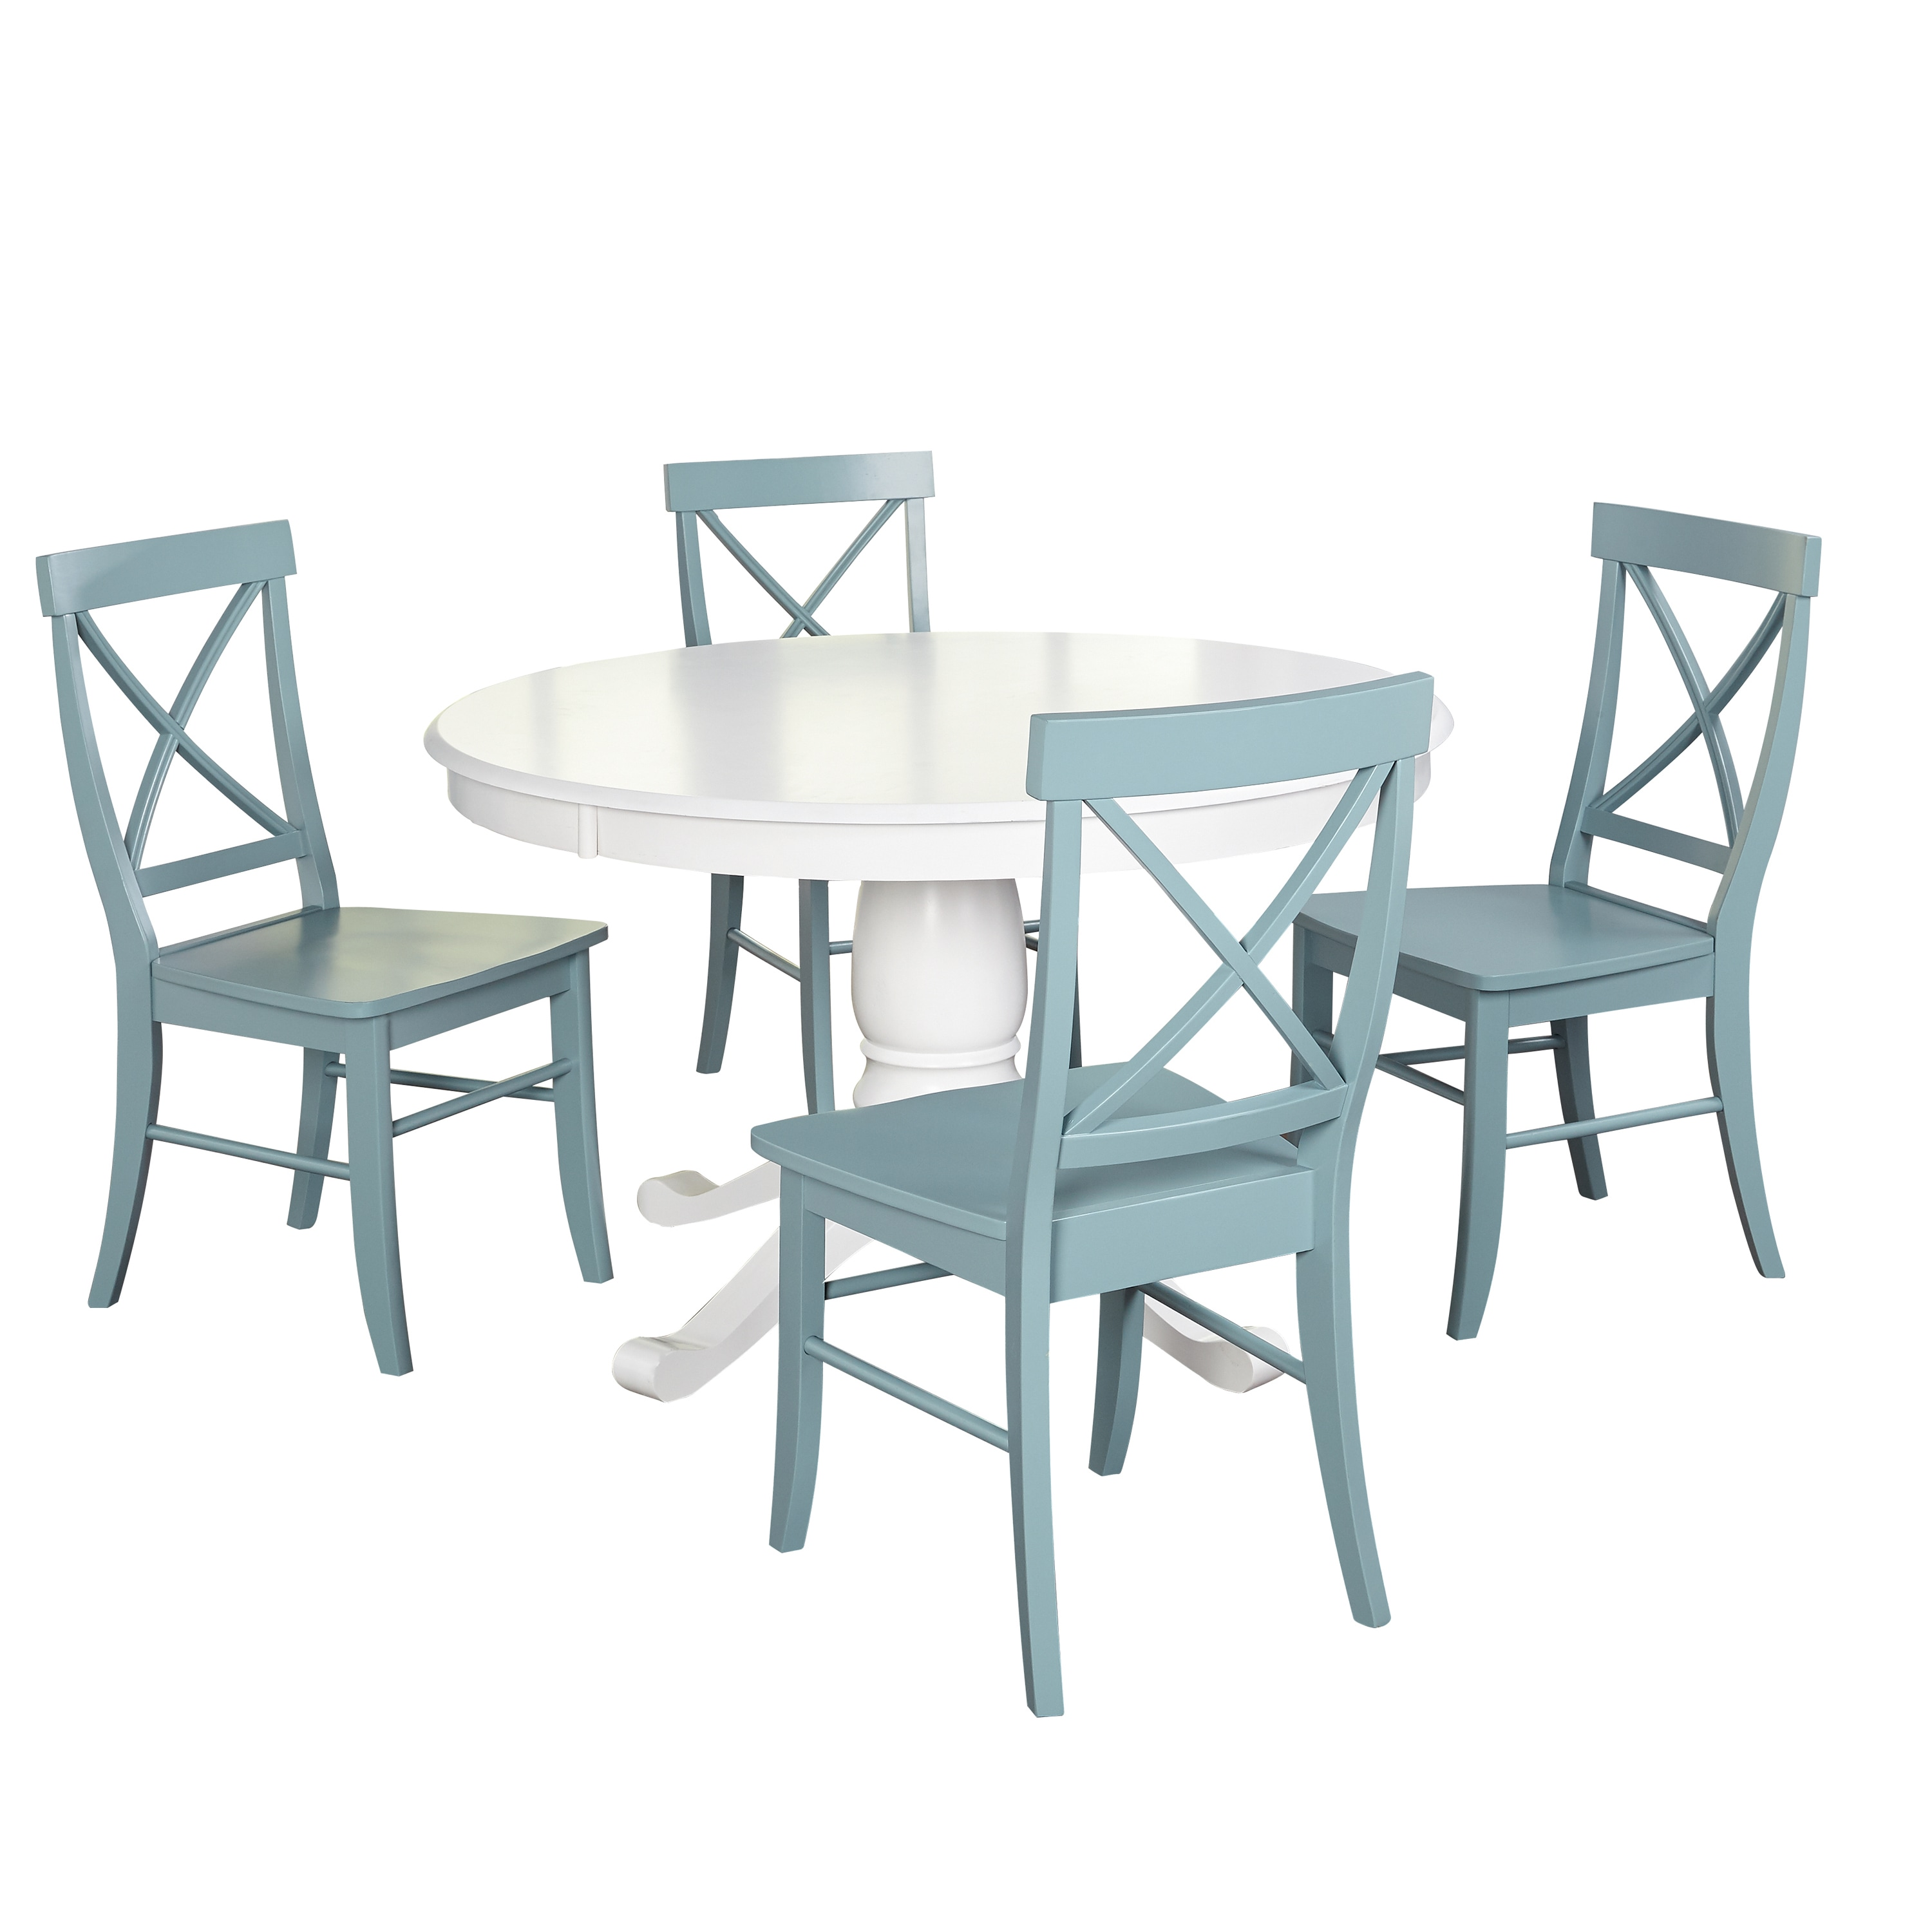 Simple Living 5 Piece Dawson Dining Set On Sale Overstock 12432886 White Grey